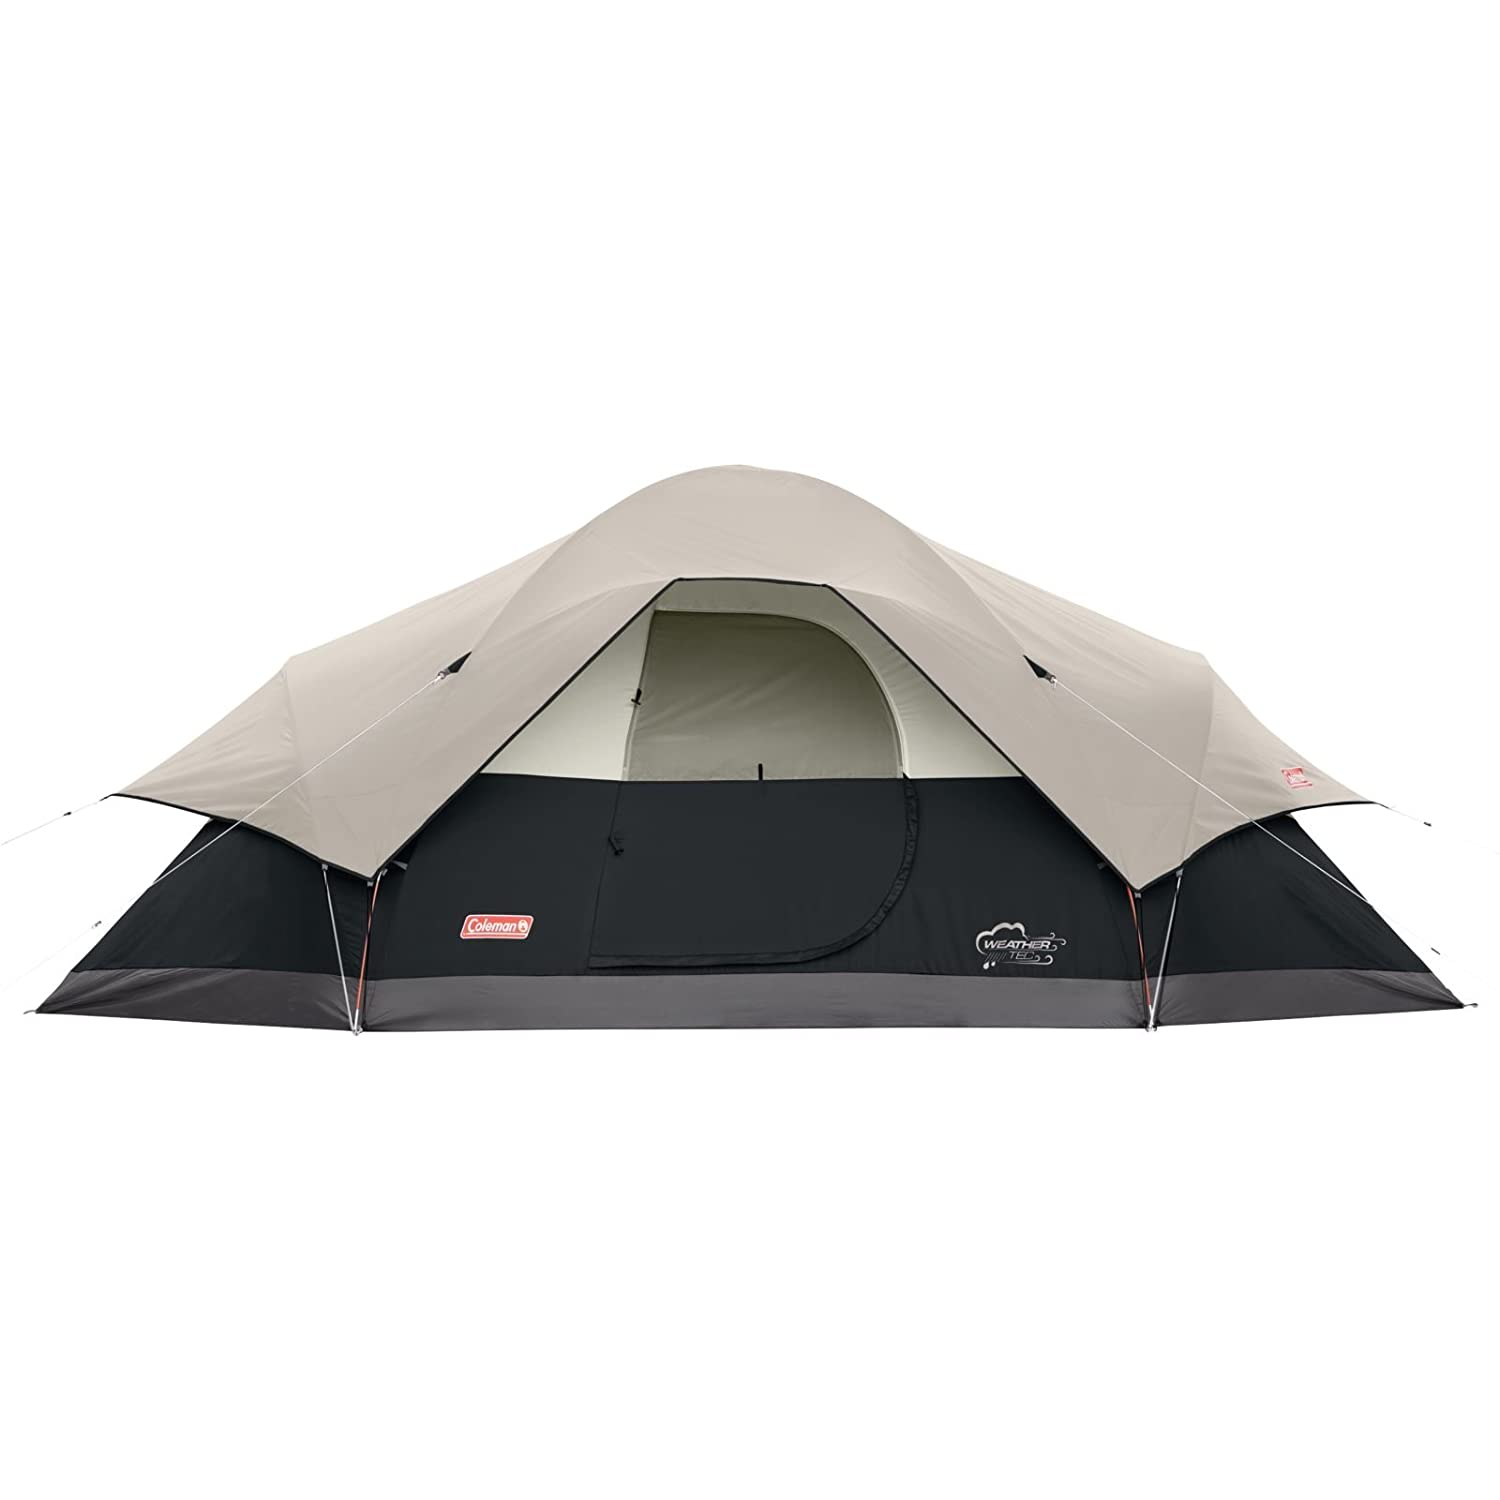 Coleman 8-Person Tent for Camping, Best Dome Tents